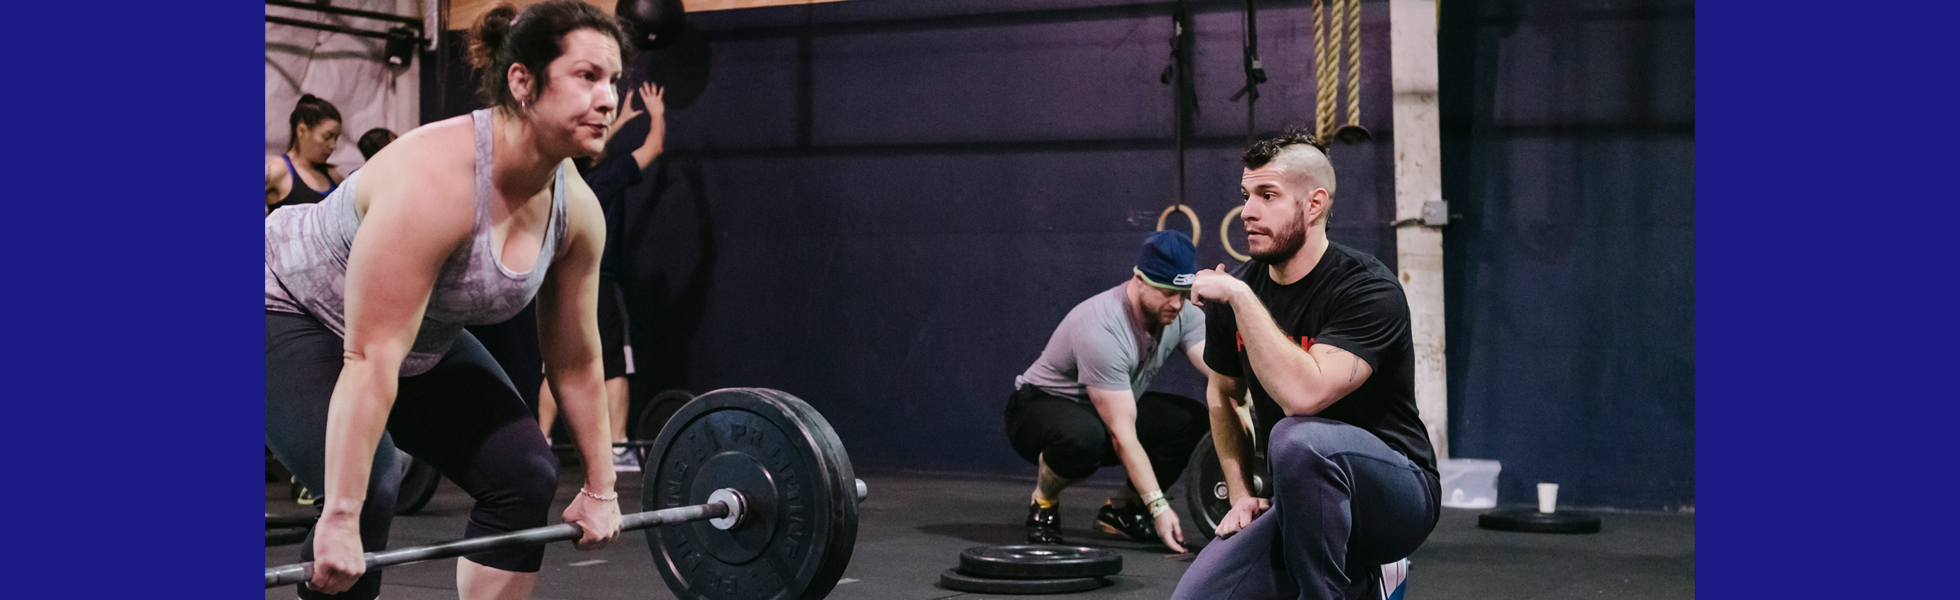 Get Started with SODO Fitness Mechanics and sign up for a free intro session!